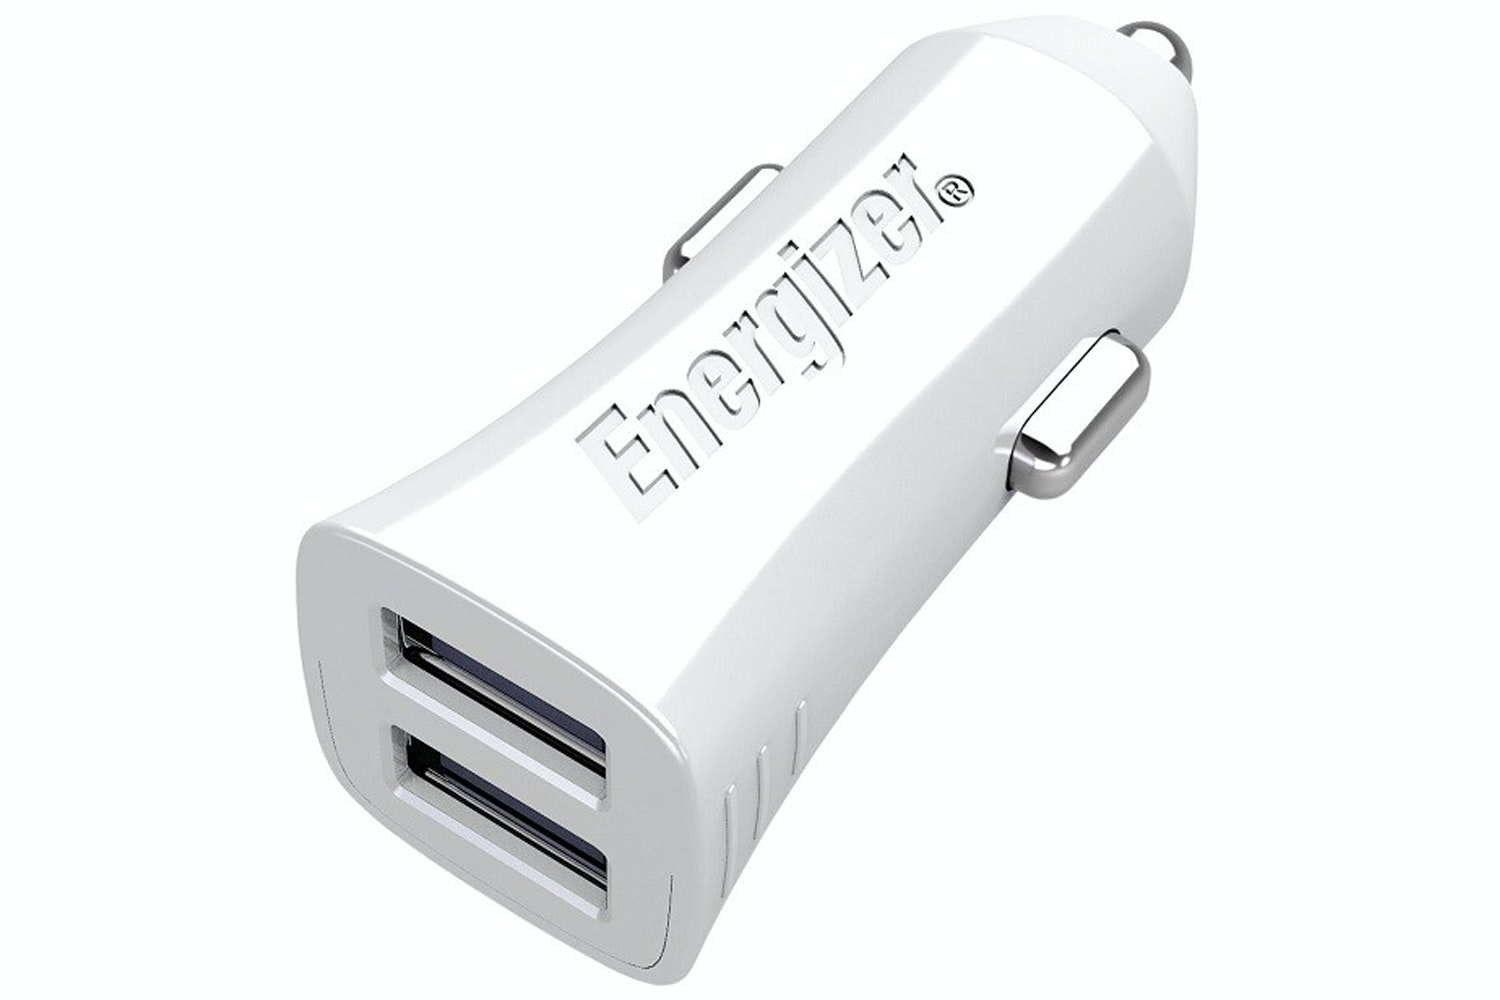 Energizer 3.4A Dual USB Car Charger | White